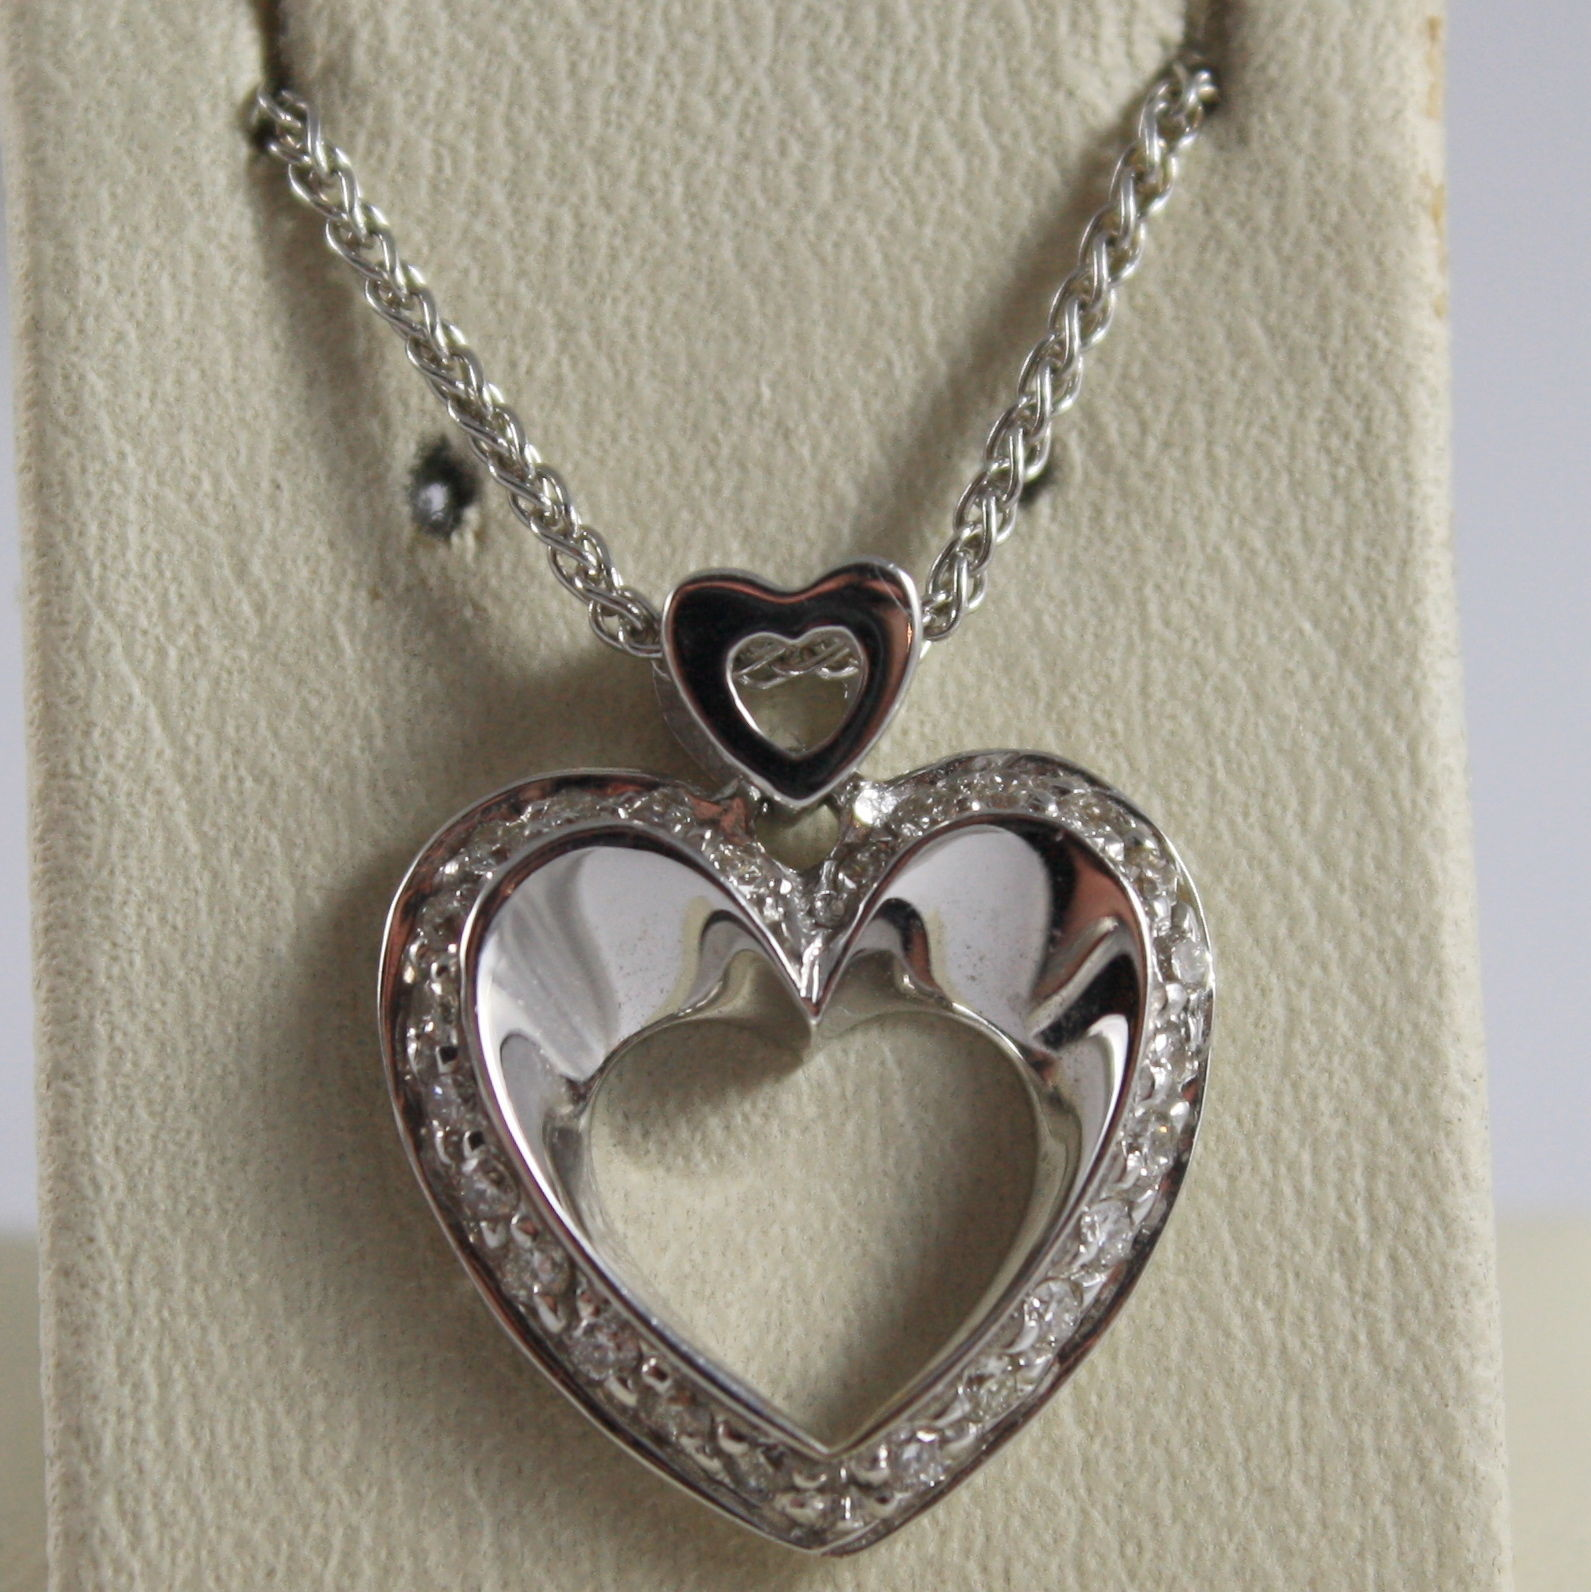 SOLID 18K WHITE GOLD NECKLACE WITH DOUBLE HEART, DIAMONDS, DIAMOND MADE IN ITALY